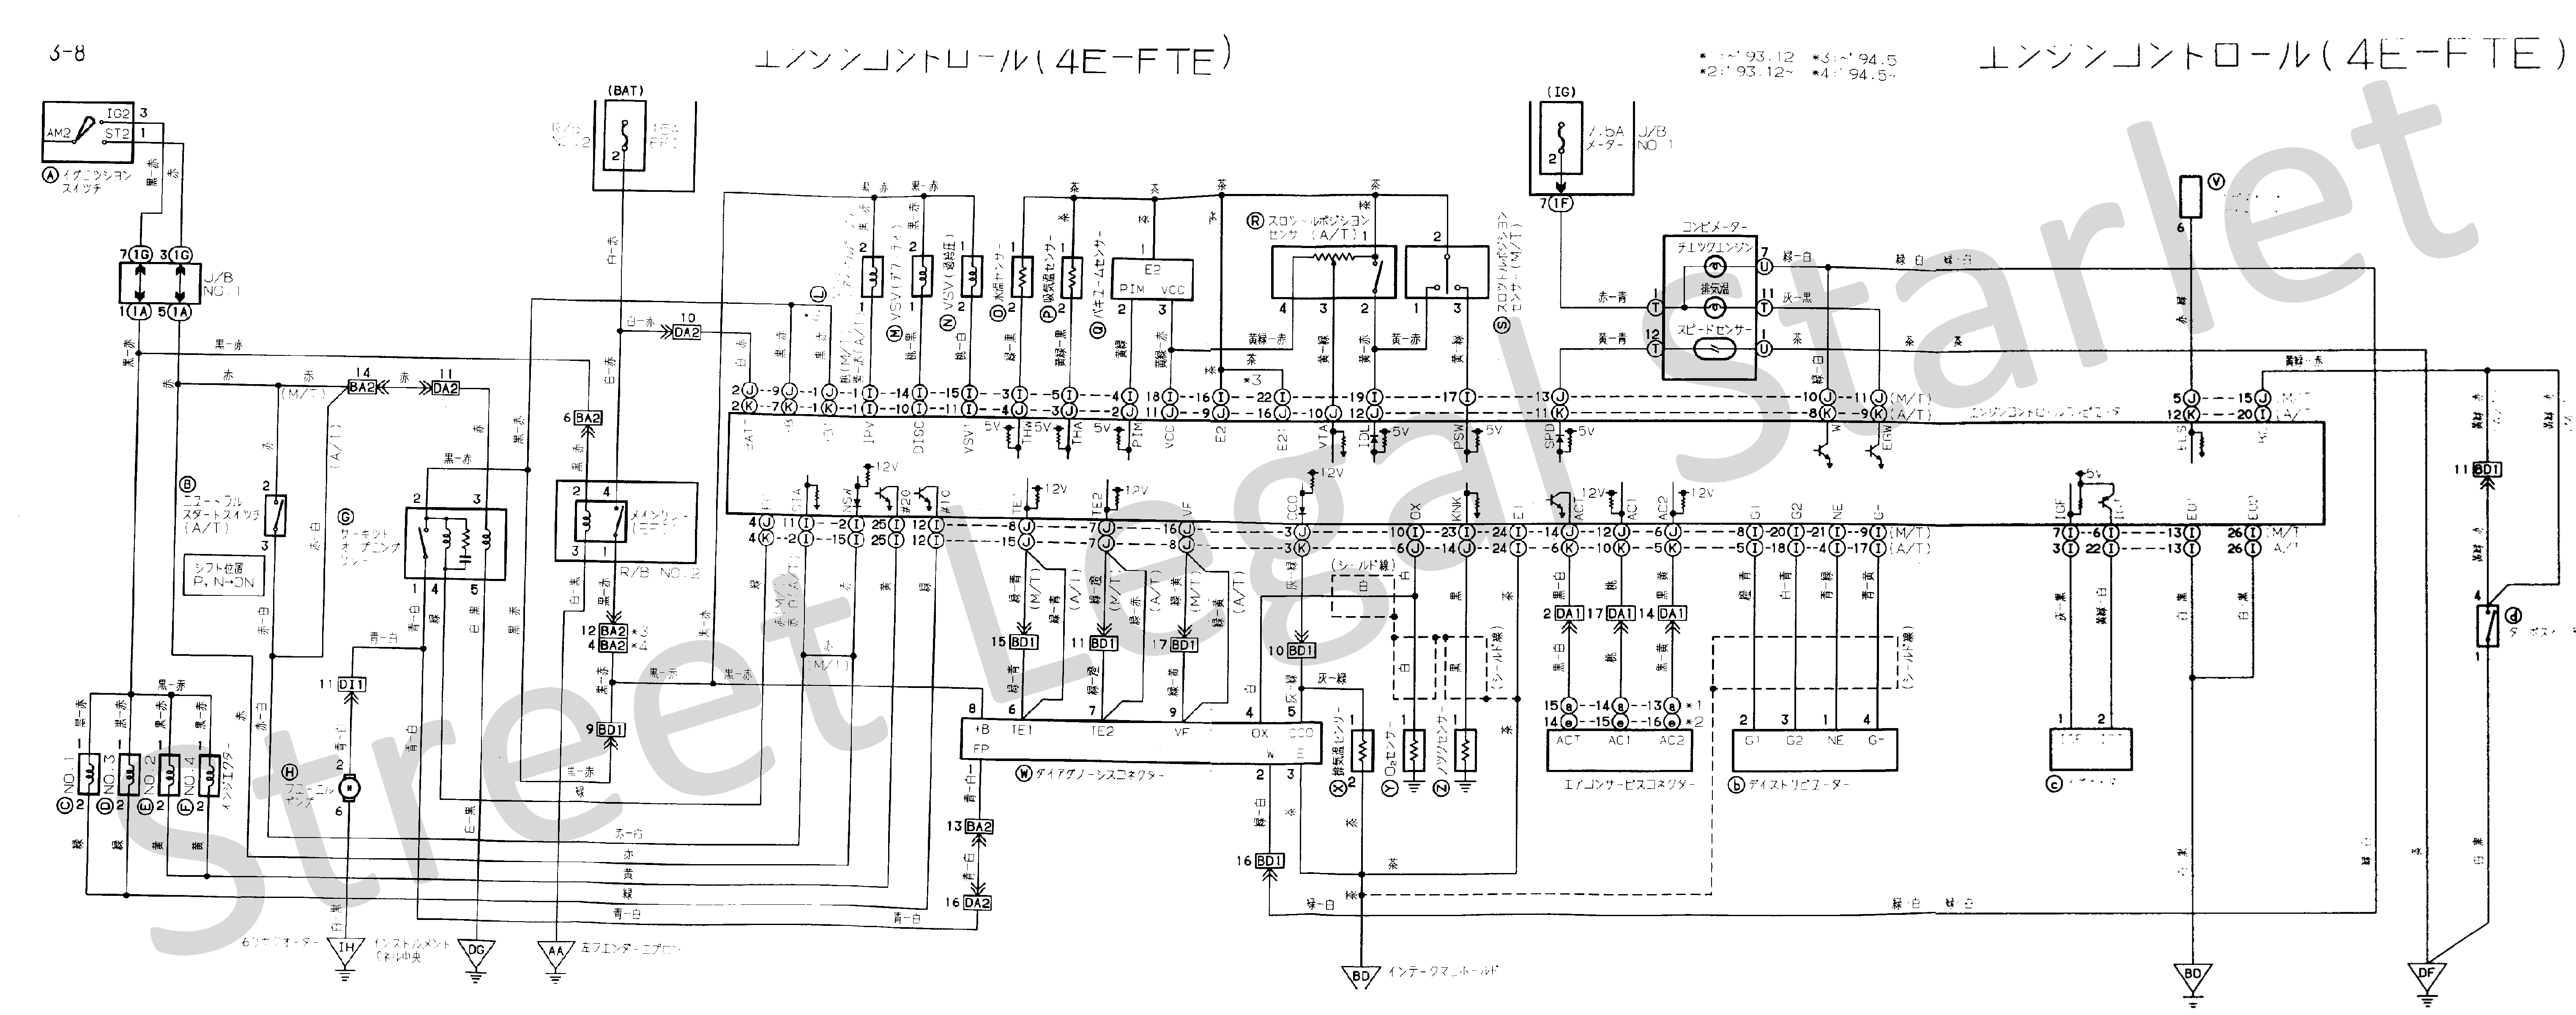 SLS EP82 Wiring diagram (kouki) index of wiki ecu wiring diagrams toyota starlet ep82 iginition wiring diagram at n-0.co